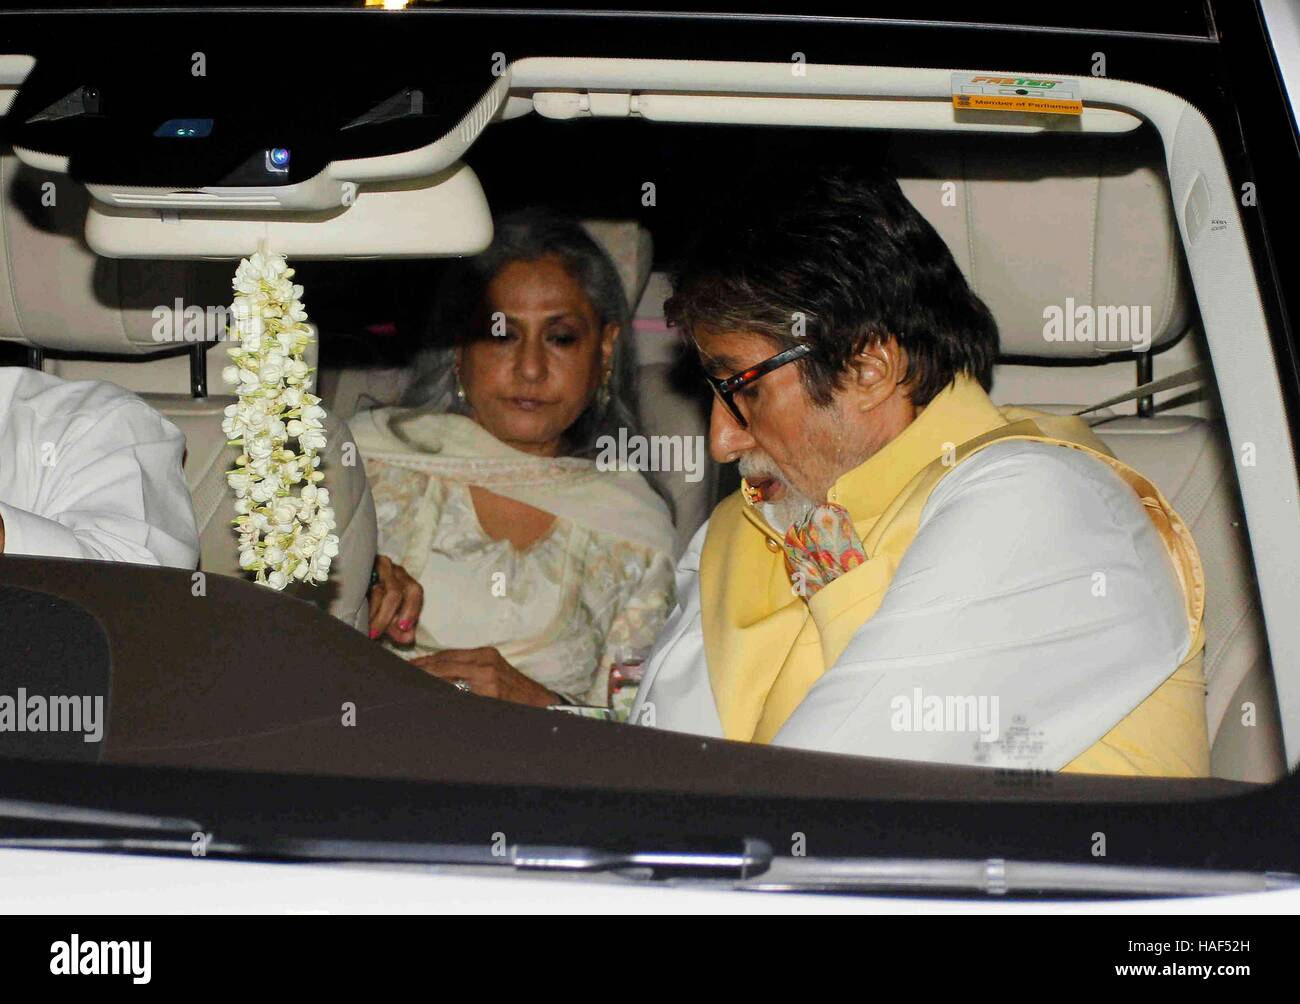 Bollywood actor Amitabh Bachchan with his wife Jaya Bachchan during Rima Jain 60th birthday celebration in Mumbai - Stock Image